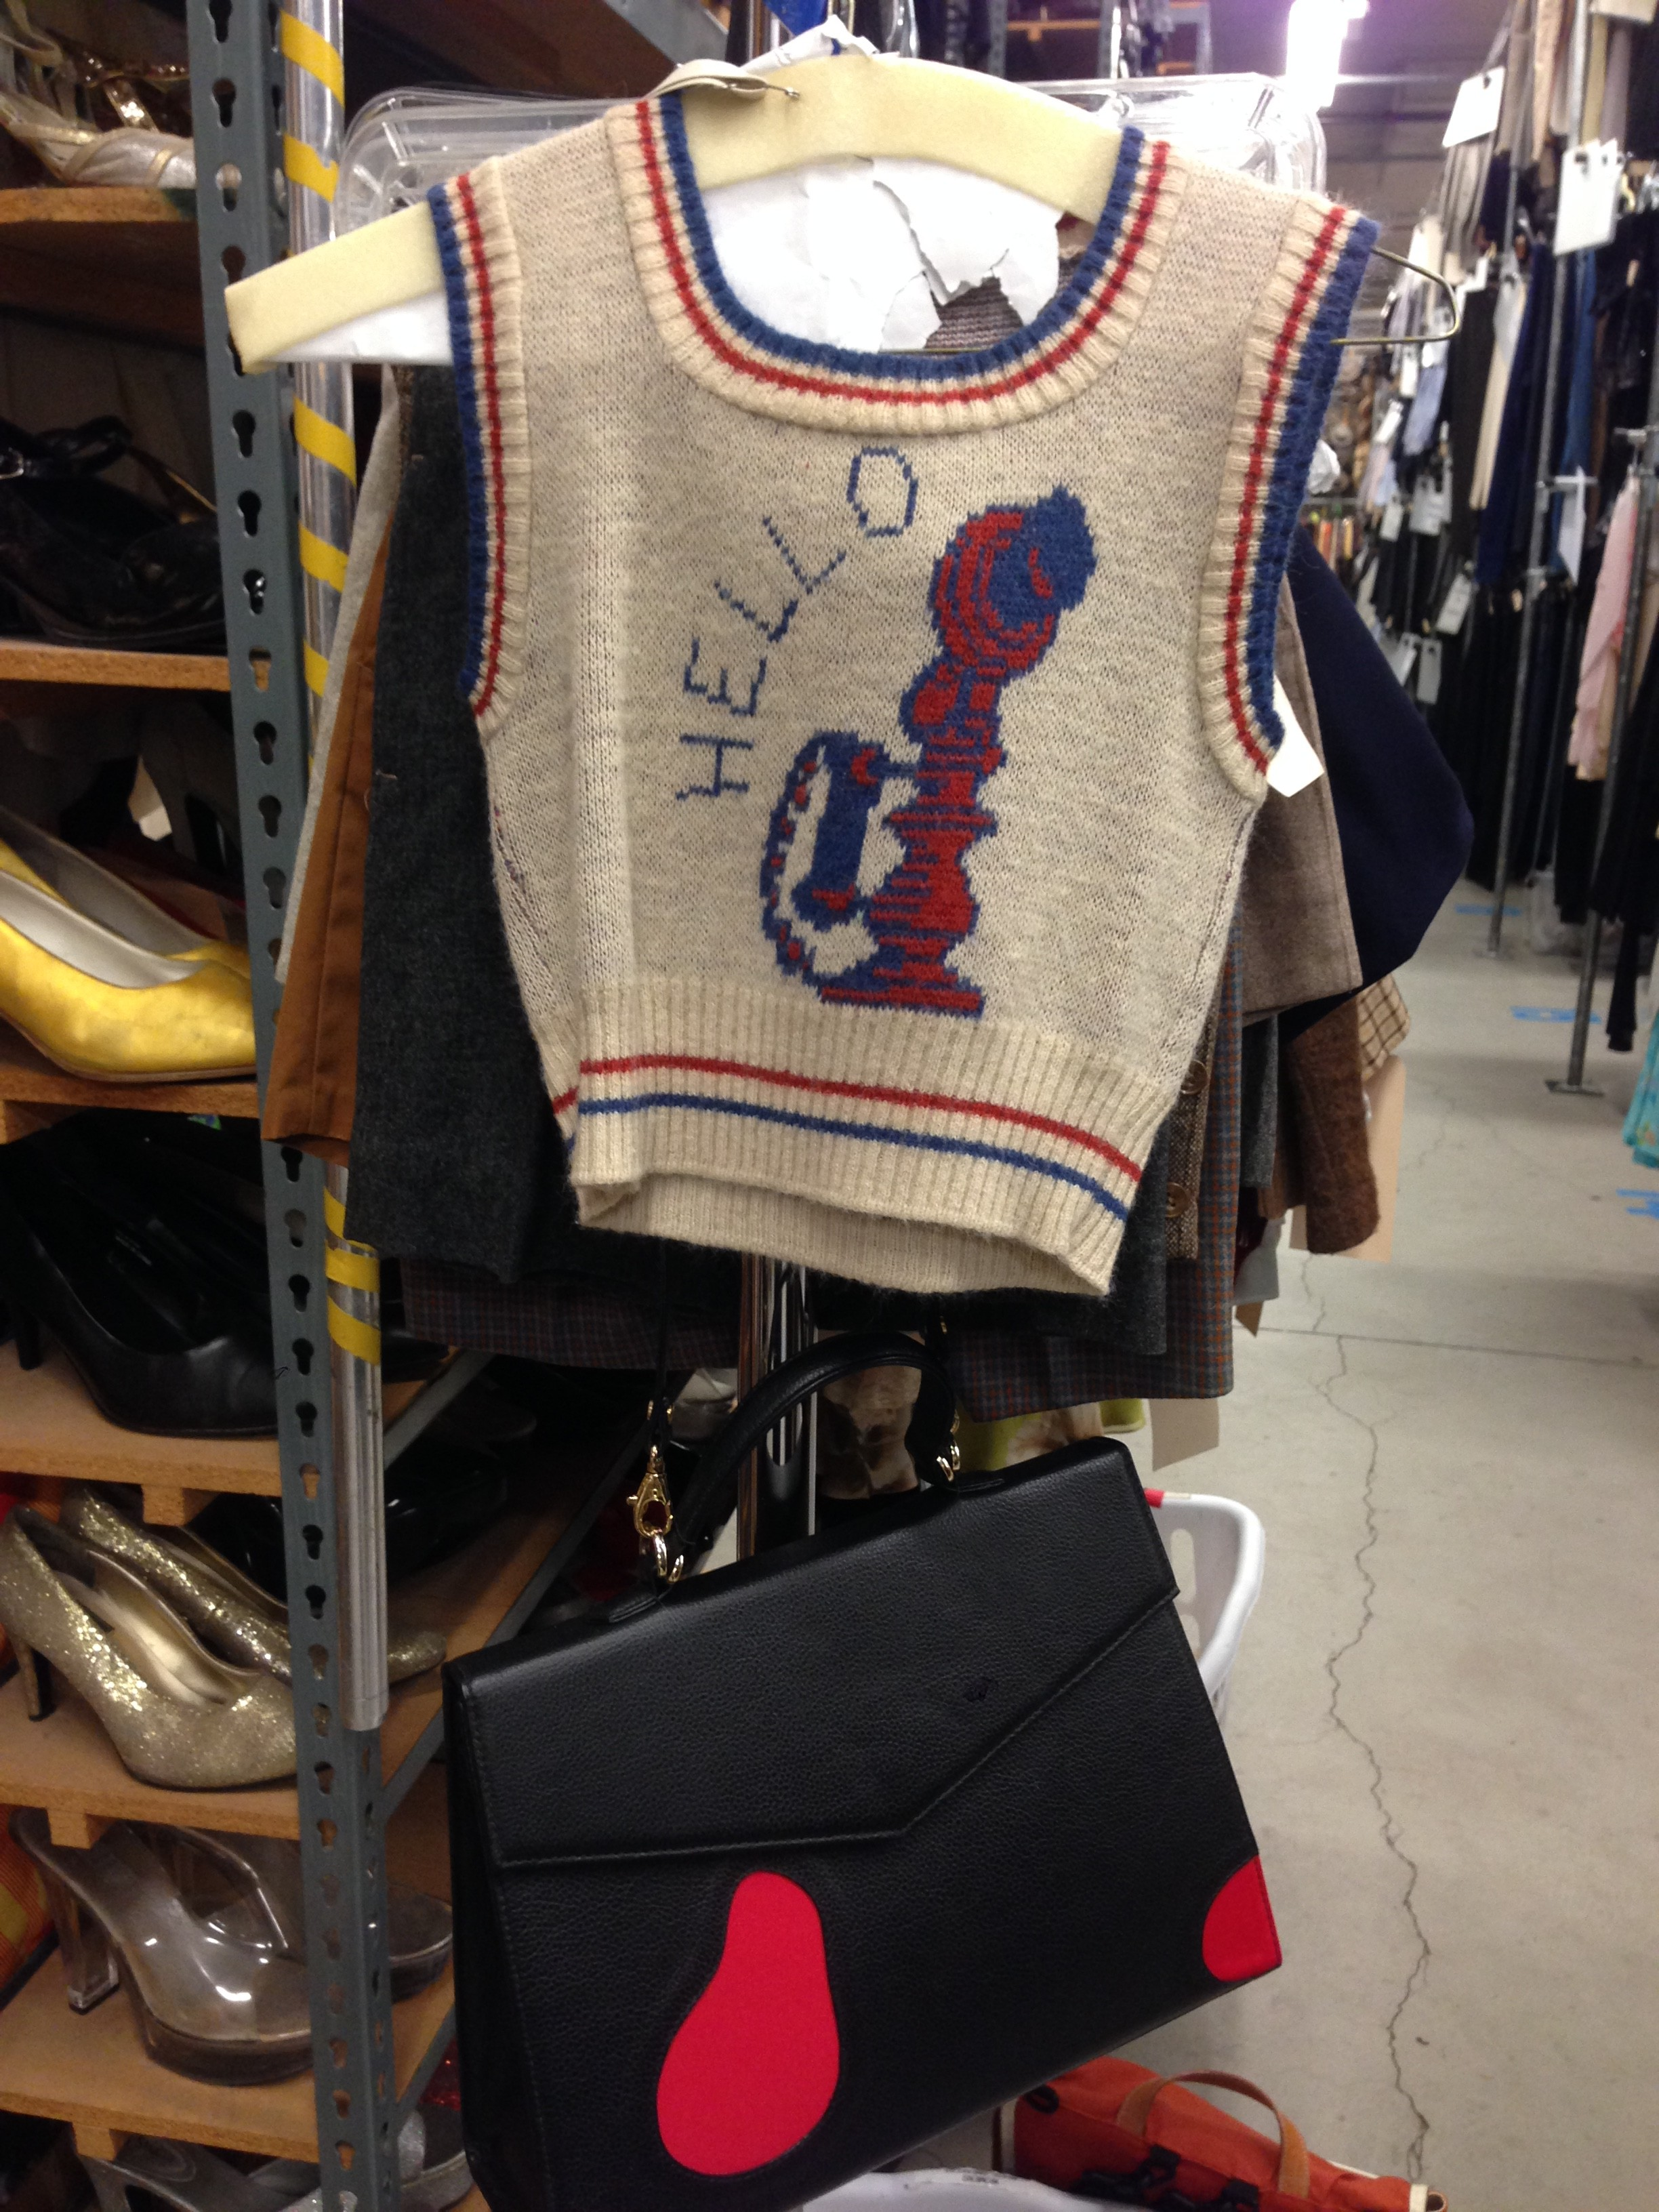 Sometimes I find cool pieces that I hope I can put someone in like this sweater vest.